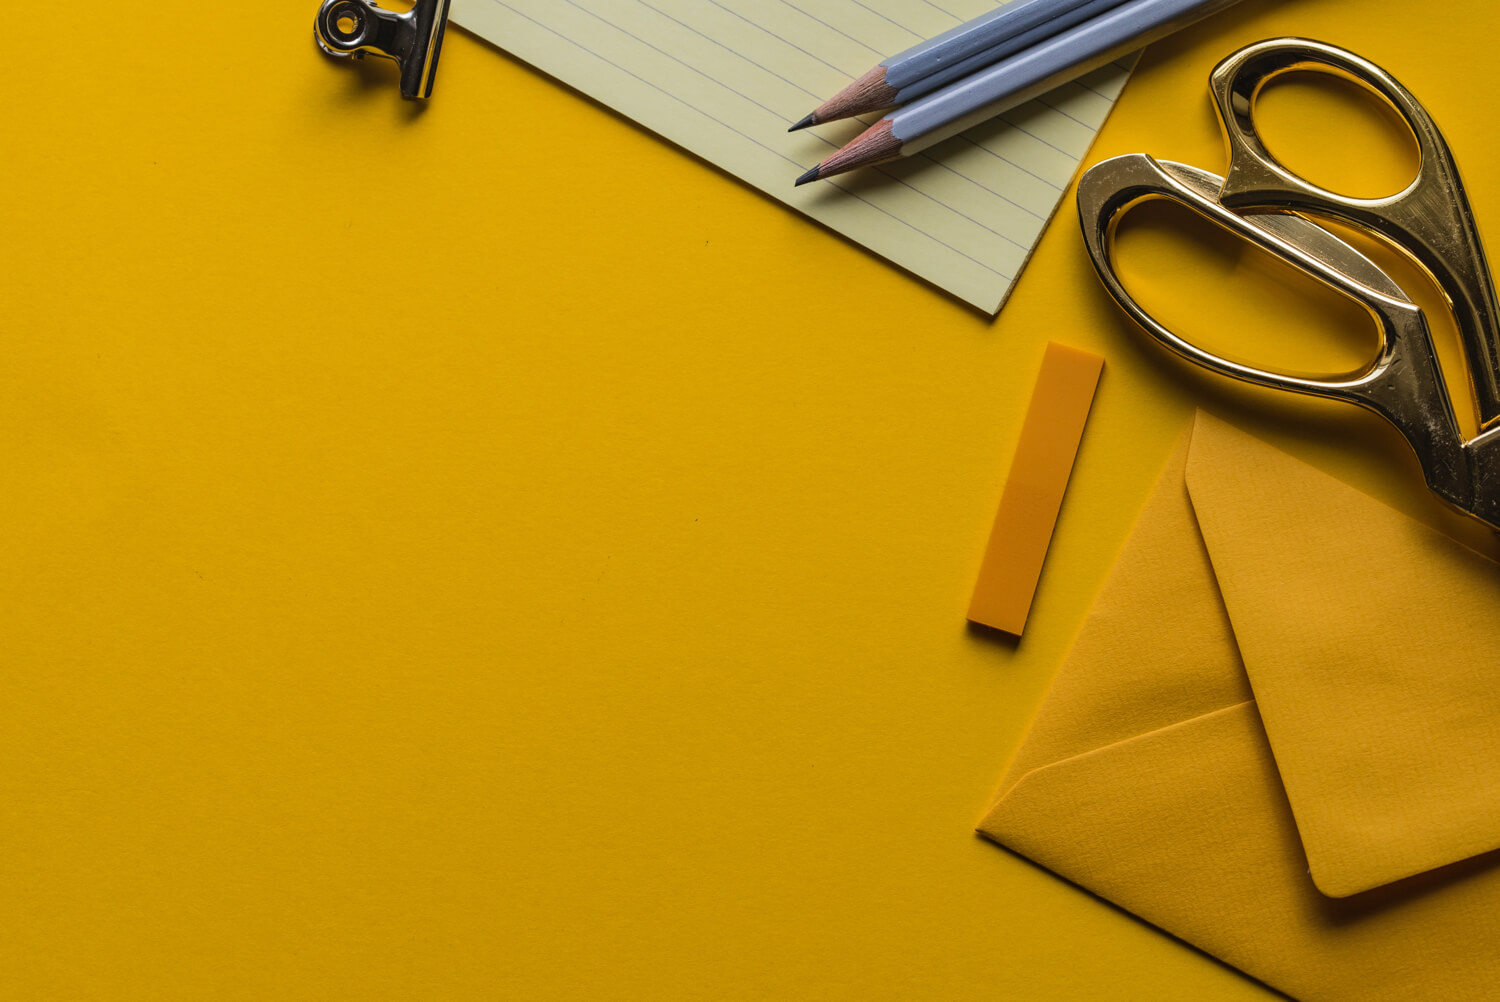 a photo of scissors, notebook and envelopes at the yellow background